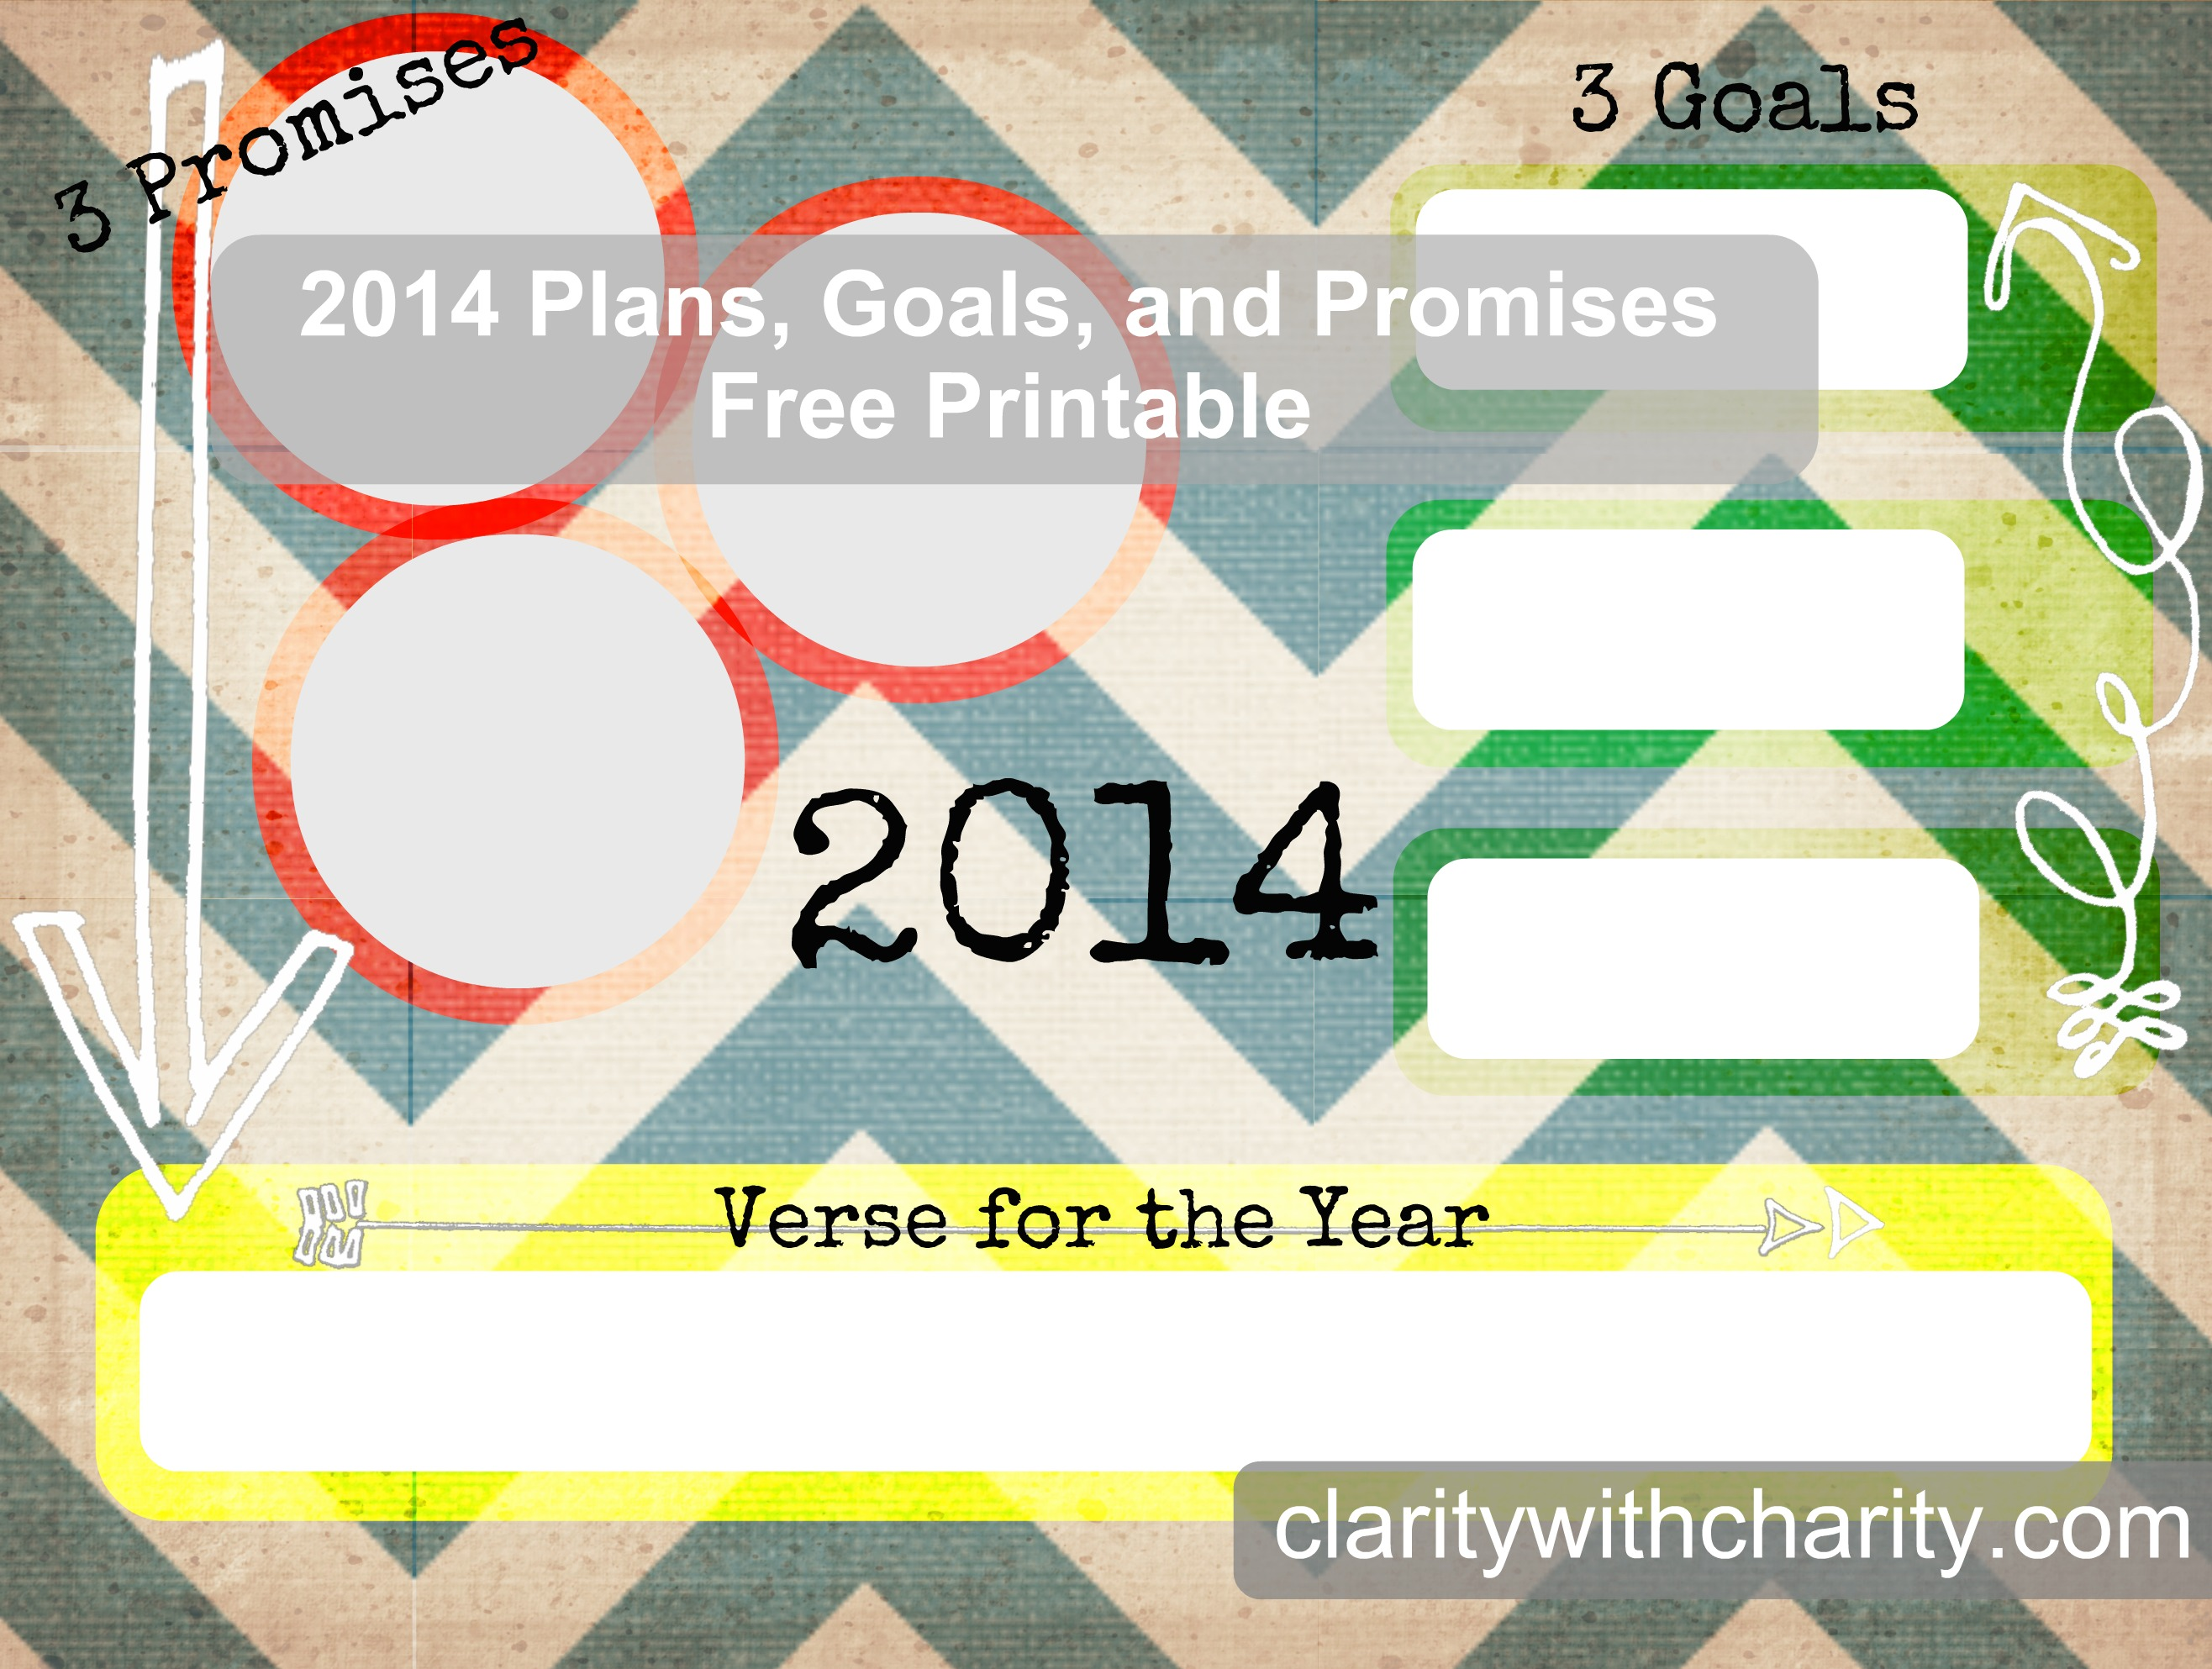 2014 new years resolution, goals and promises free printable